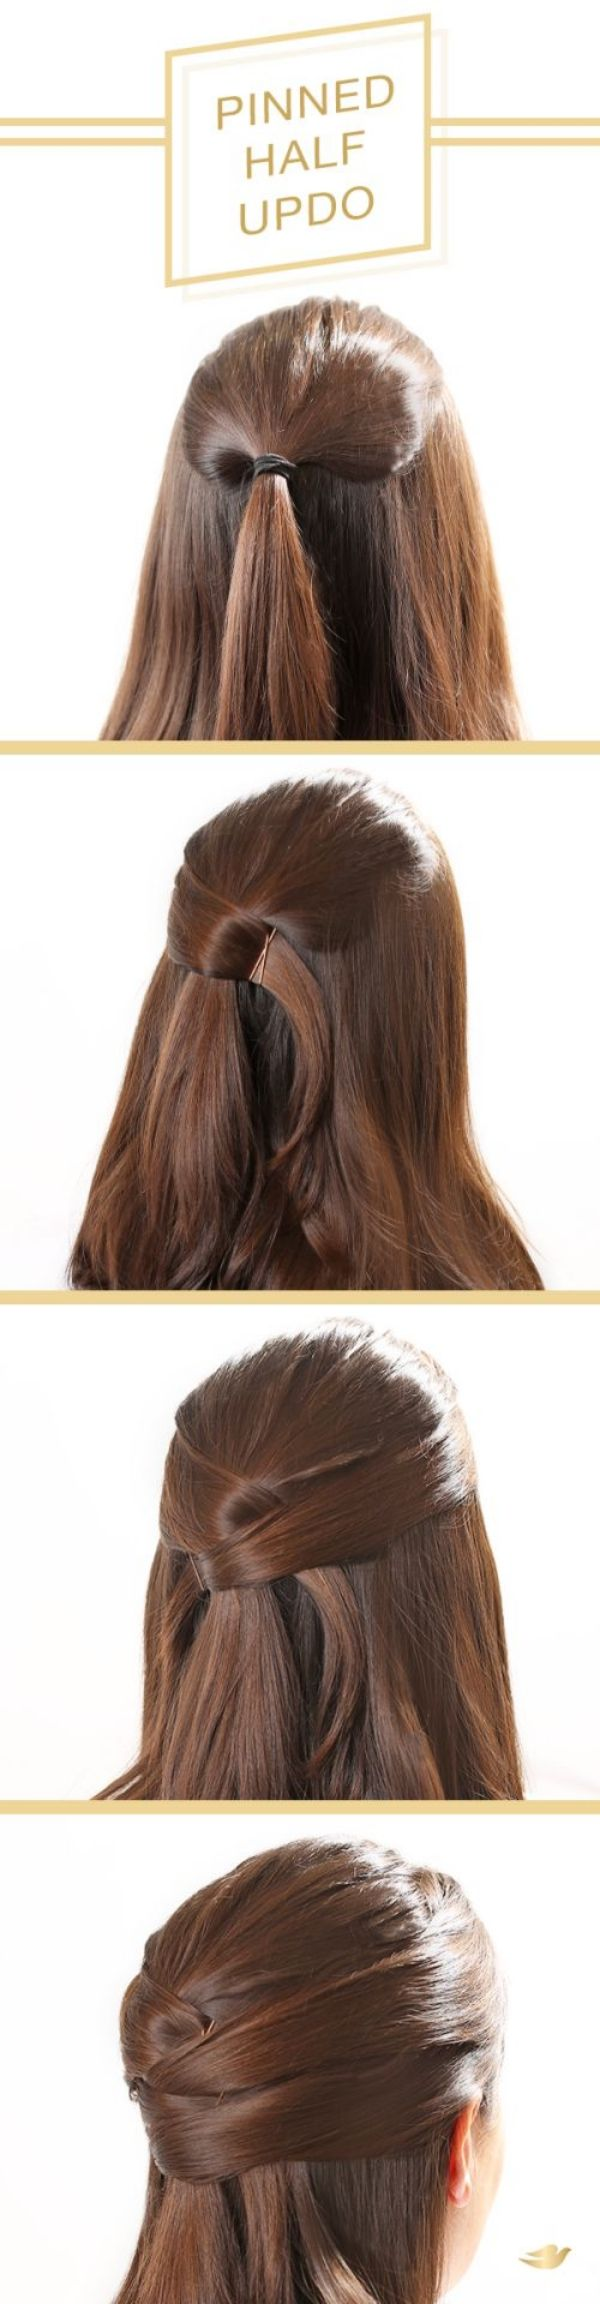 best 25+ office hairstyles ideas on pinterest | office hair